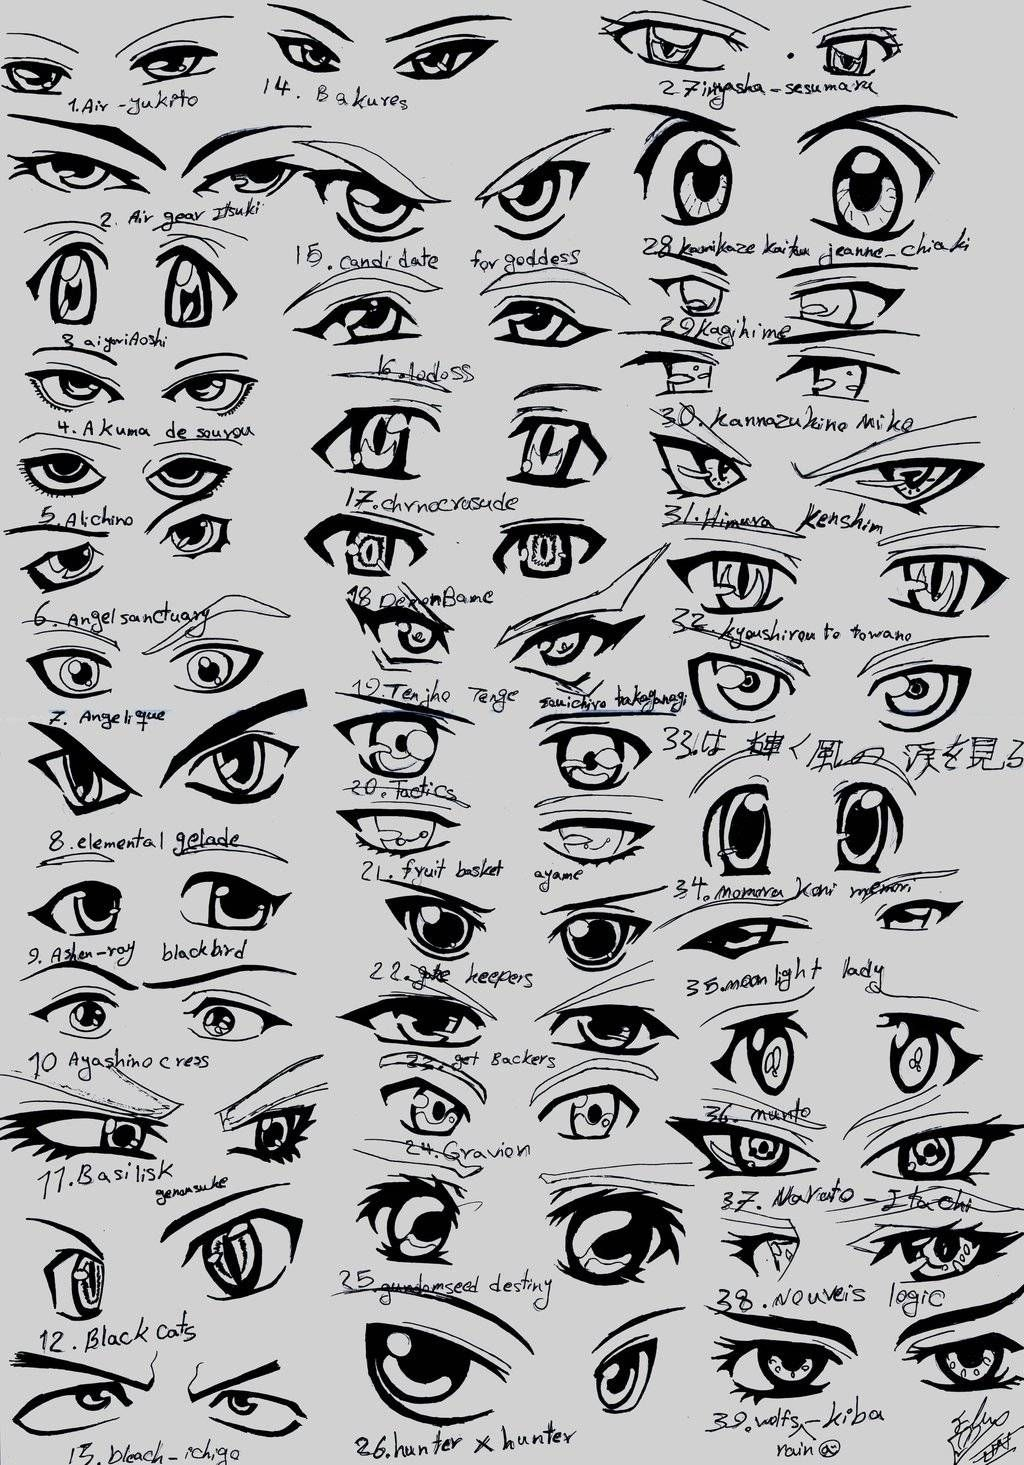 How To Draw Male Anime Eyes Widescreen 2 HD Wallpapers 눈